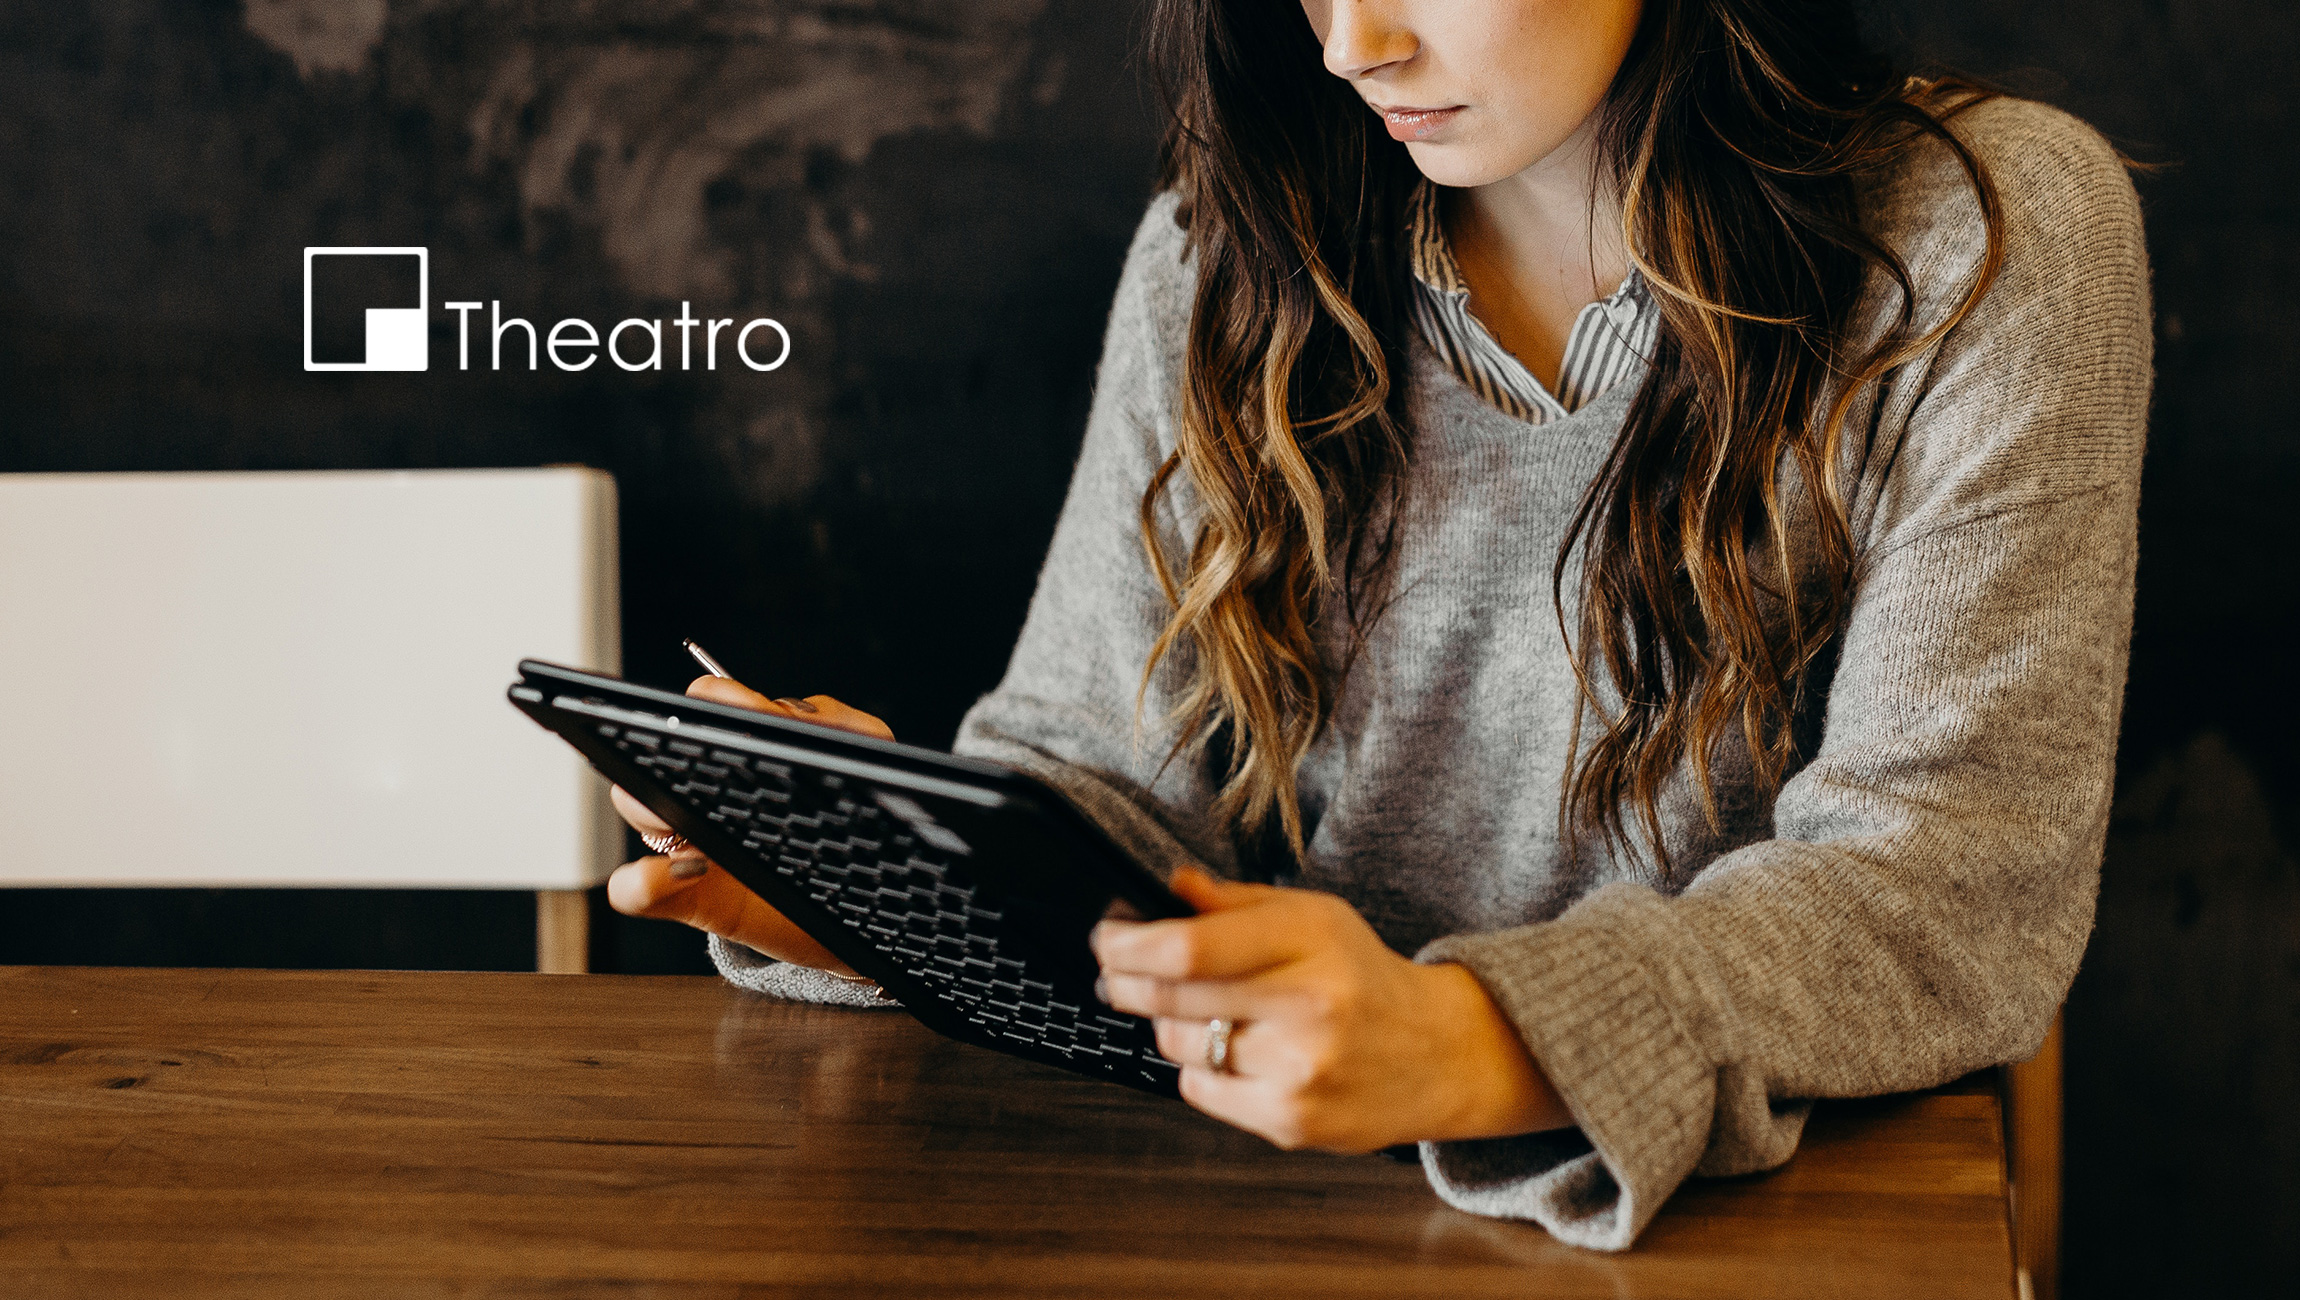 Theatro Announces Strategic Investments From Cisco Investments And Honeywell Ventures